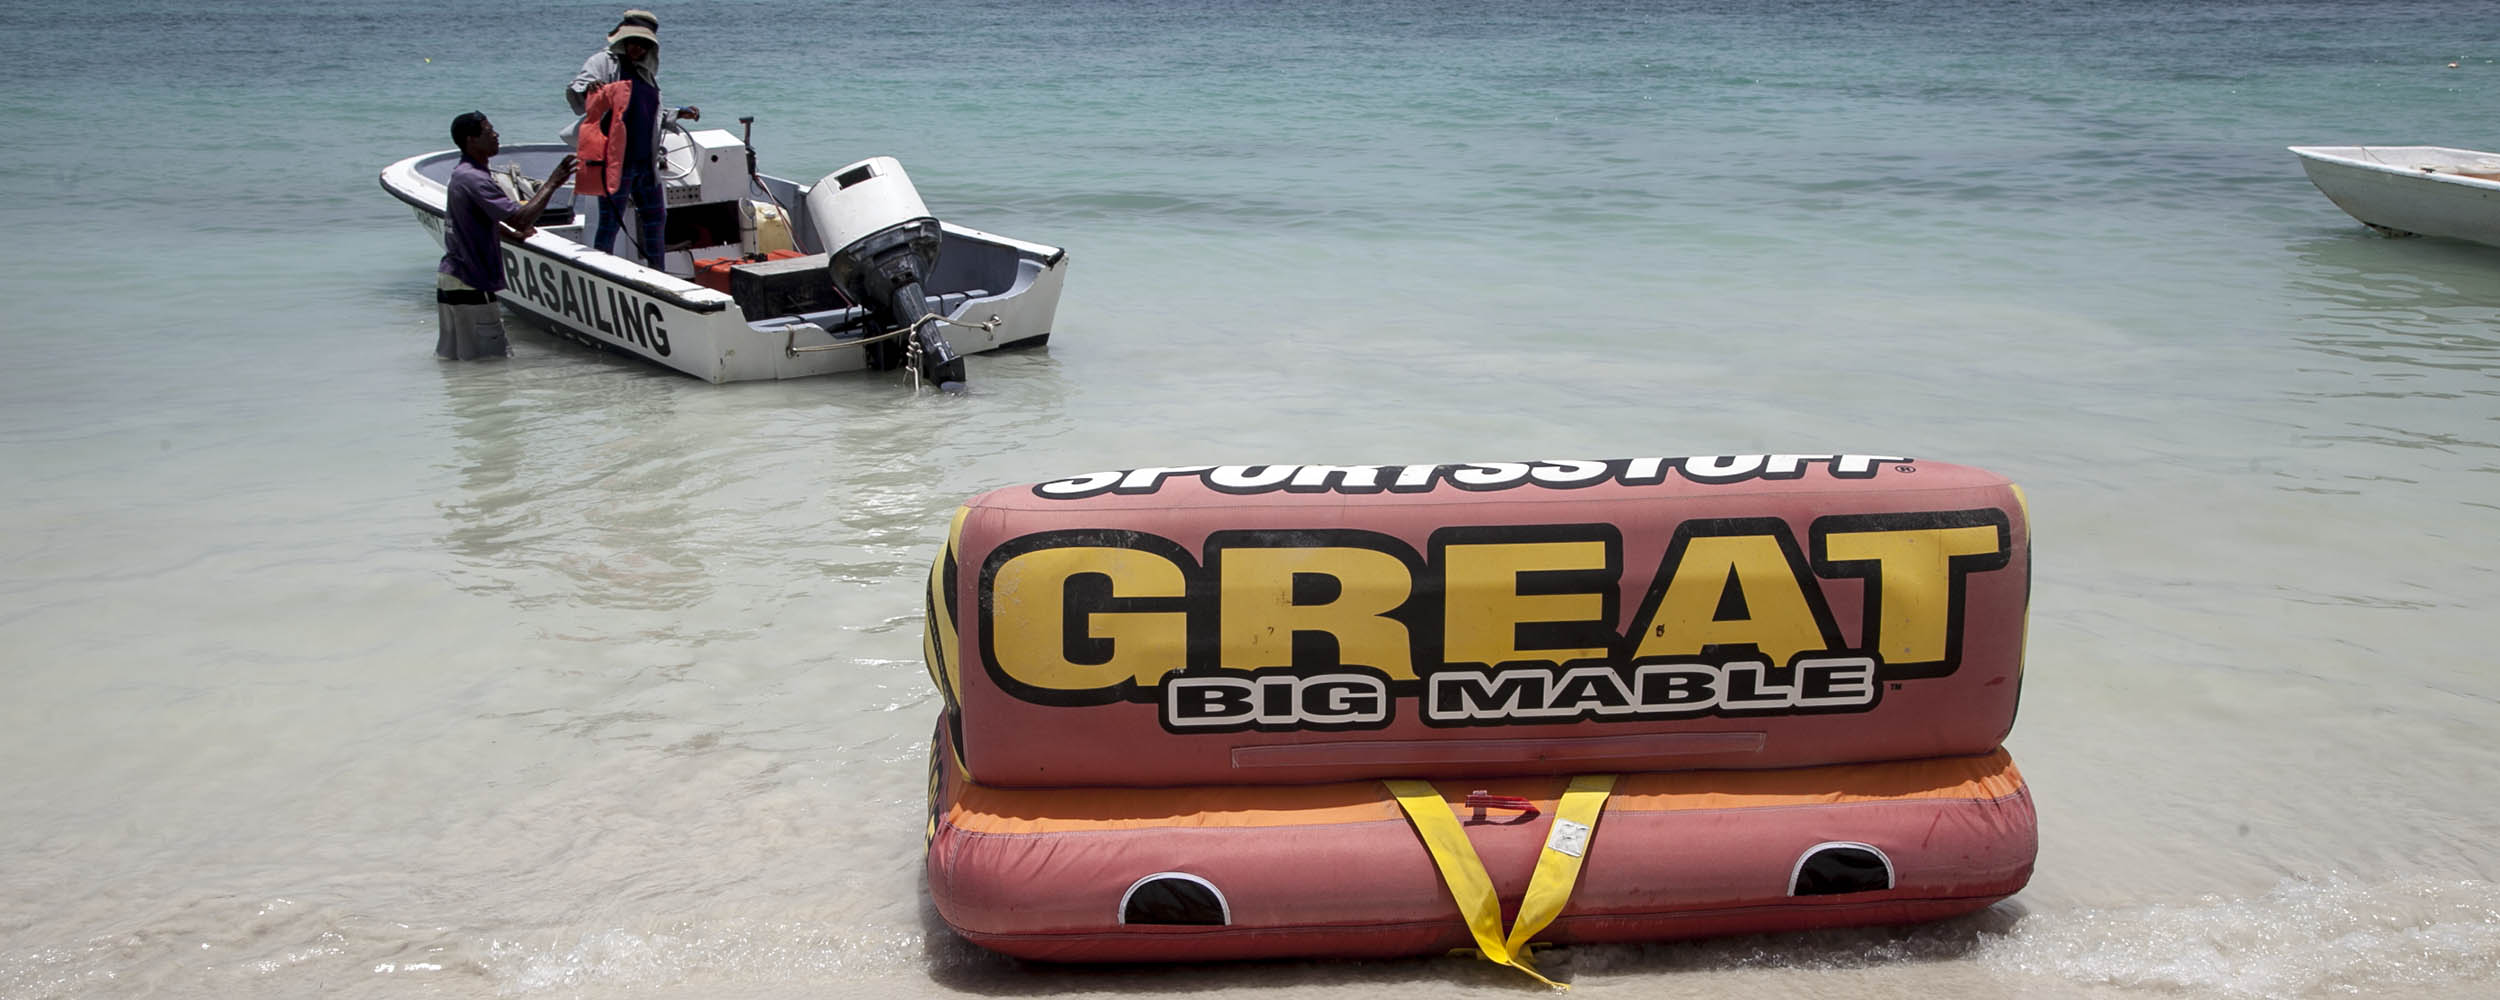 Ray's Water Sports - Negril Beach, Negril Jamaica